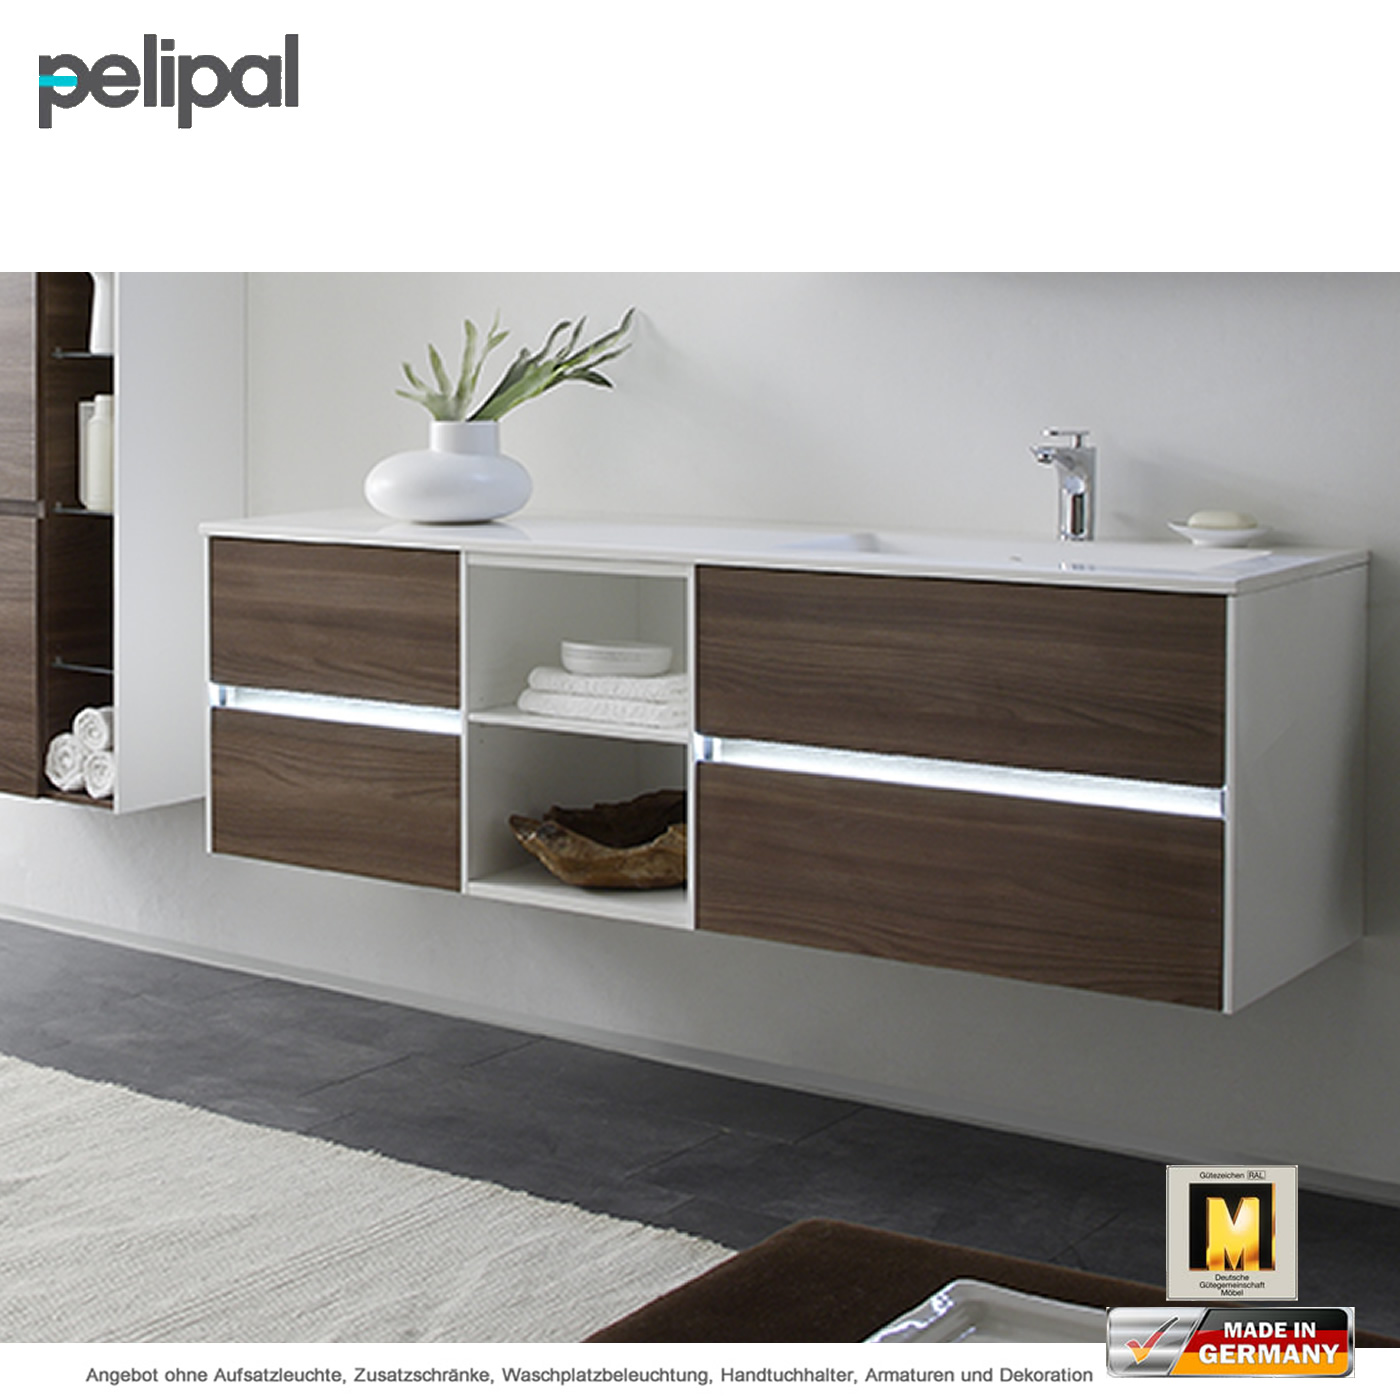 pelipal solitaire 6010 waschtischset 168 cm mit 4 ausz gen und regal im unterschrank impulsbad. Black Bedroom Furniture Sets. Home Design Ideas